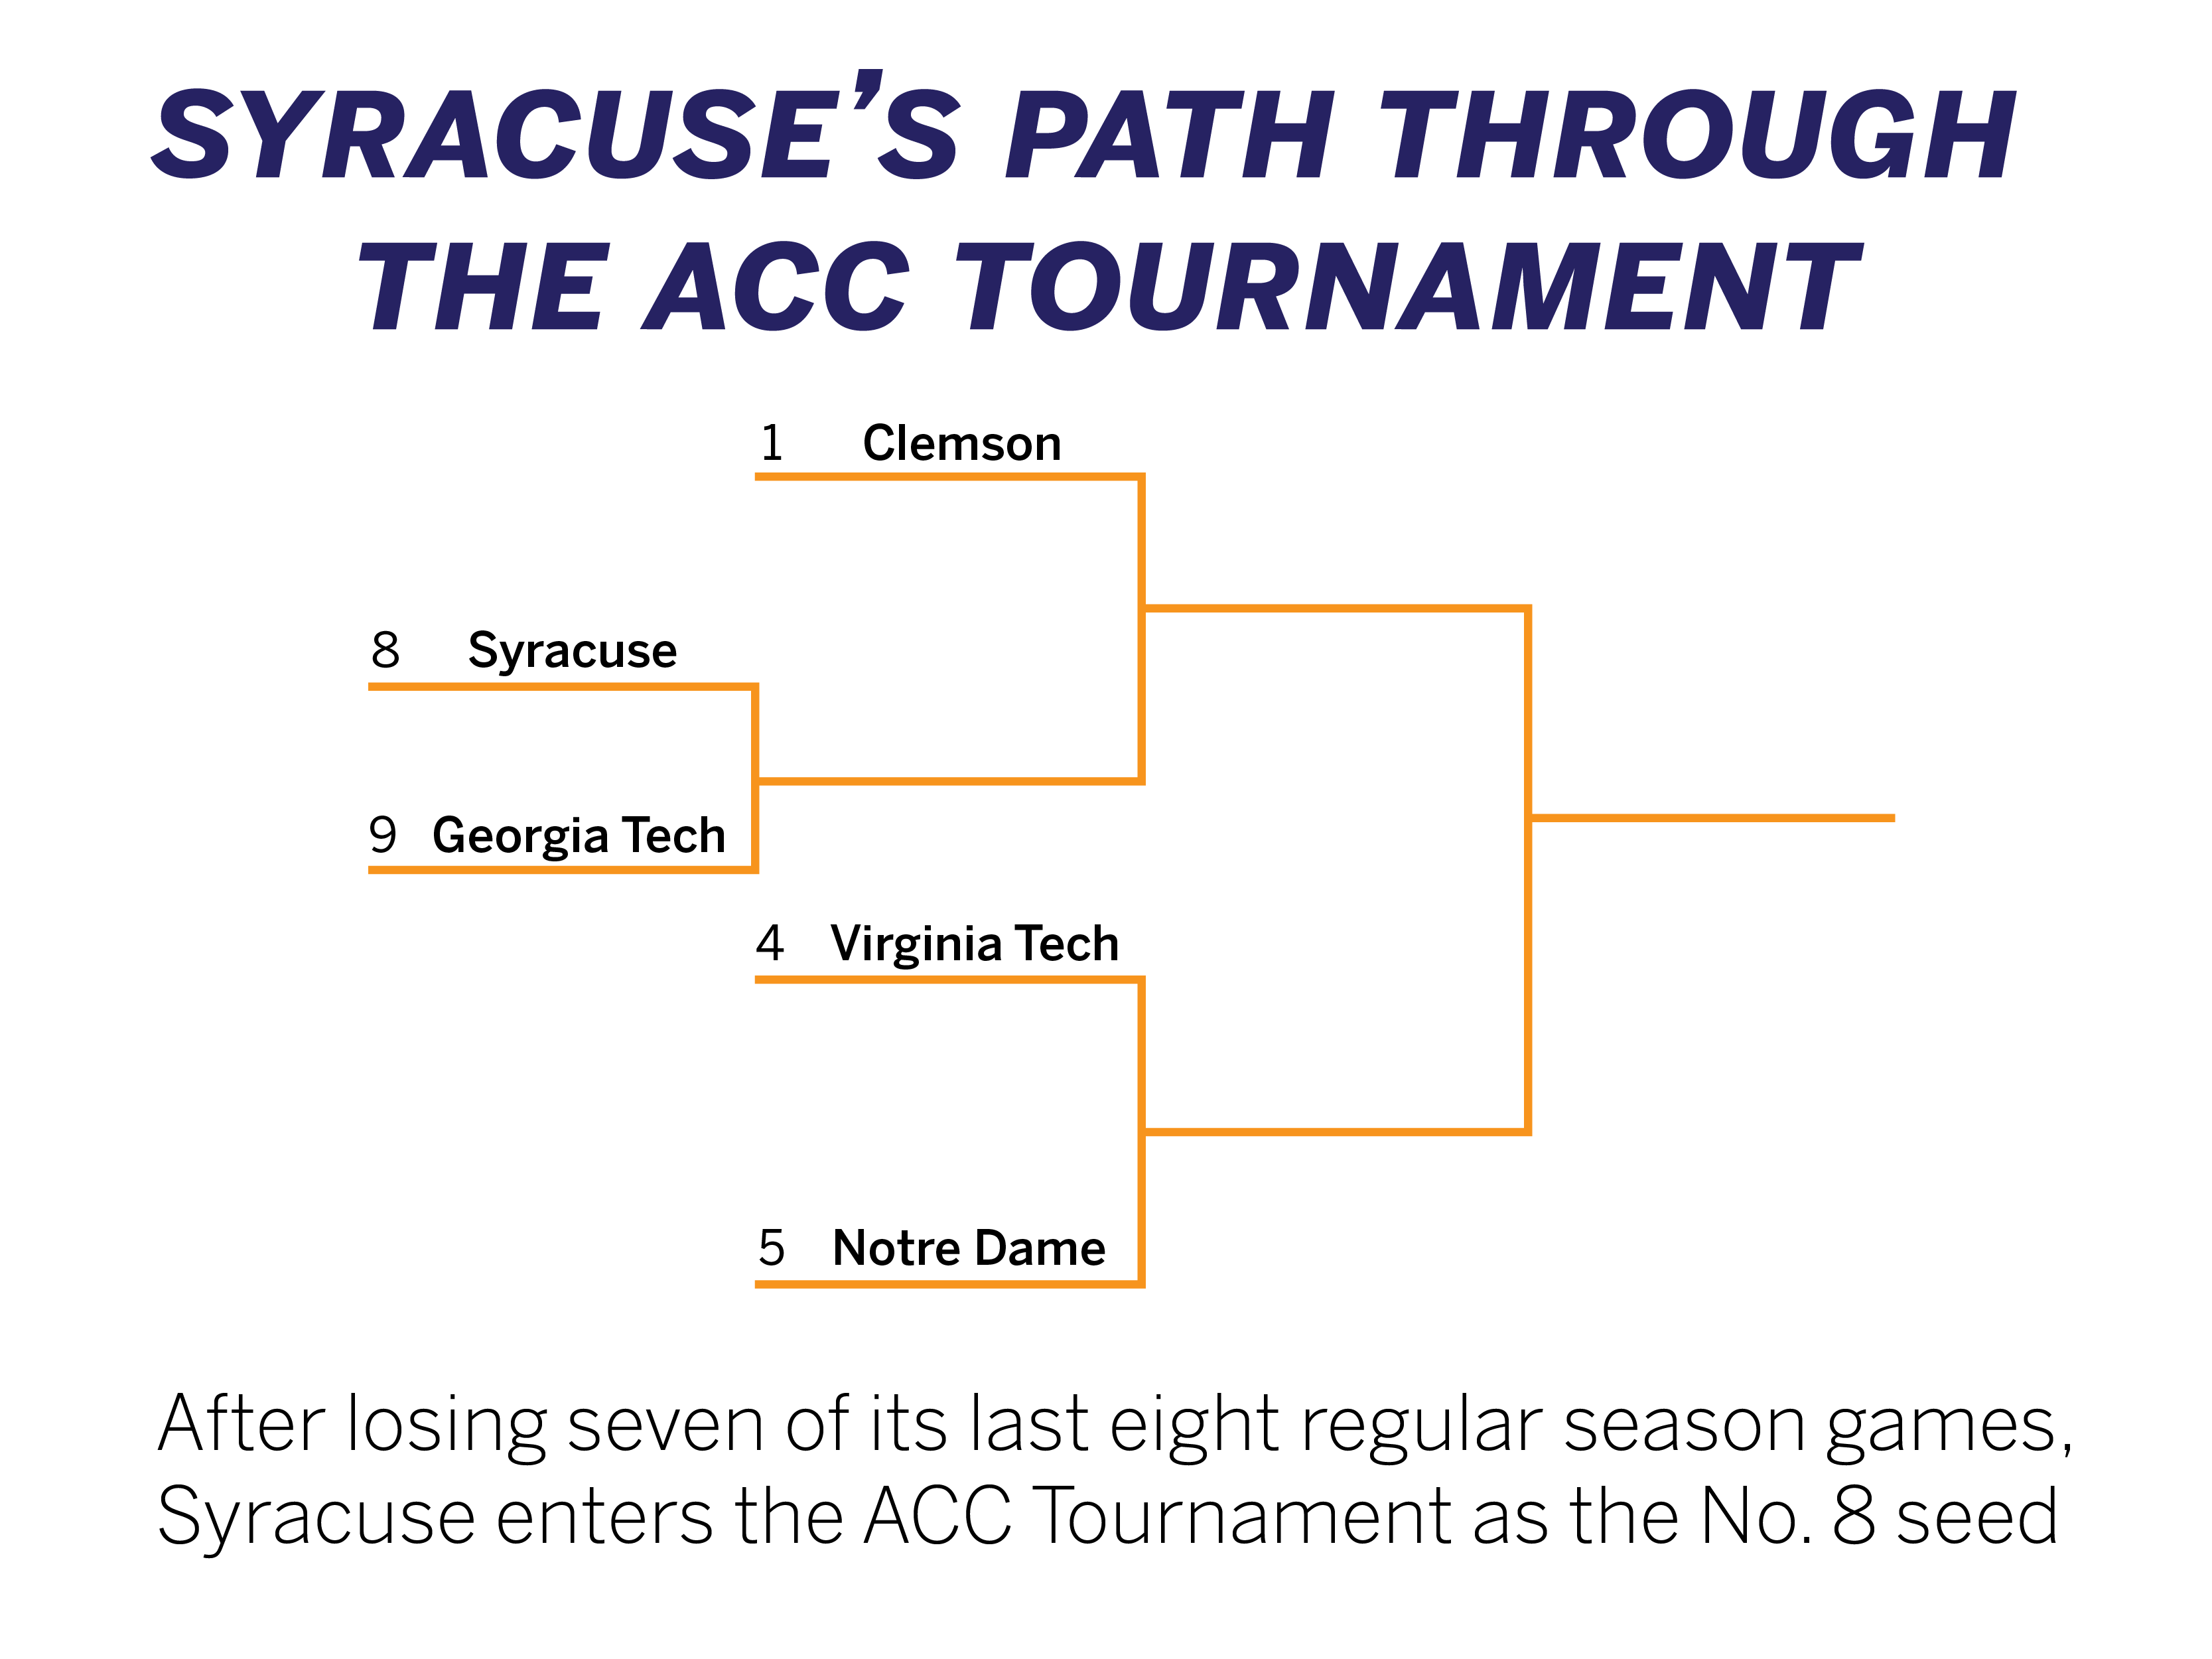 Bracket of Syracuse's path in the ACC Tournament